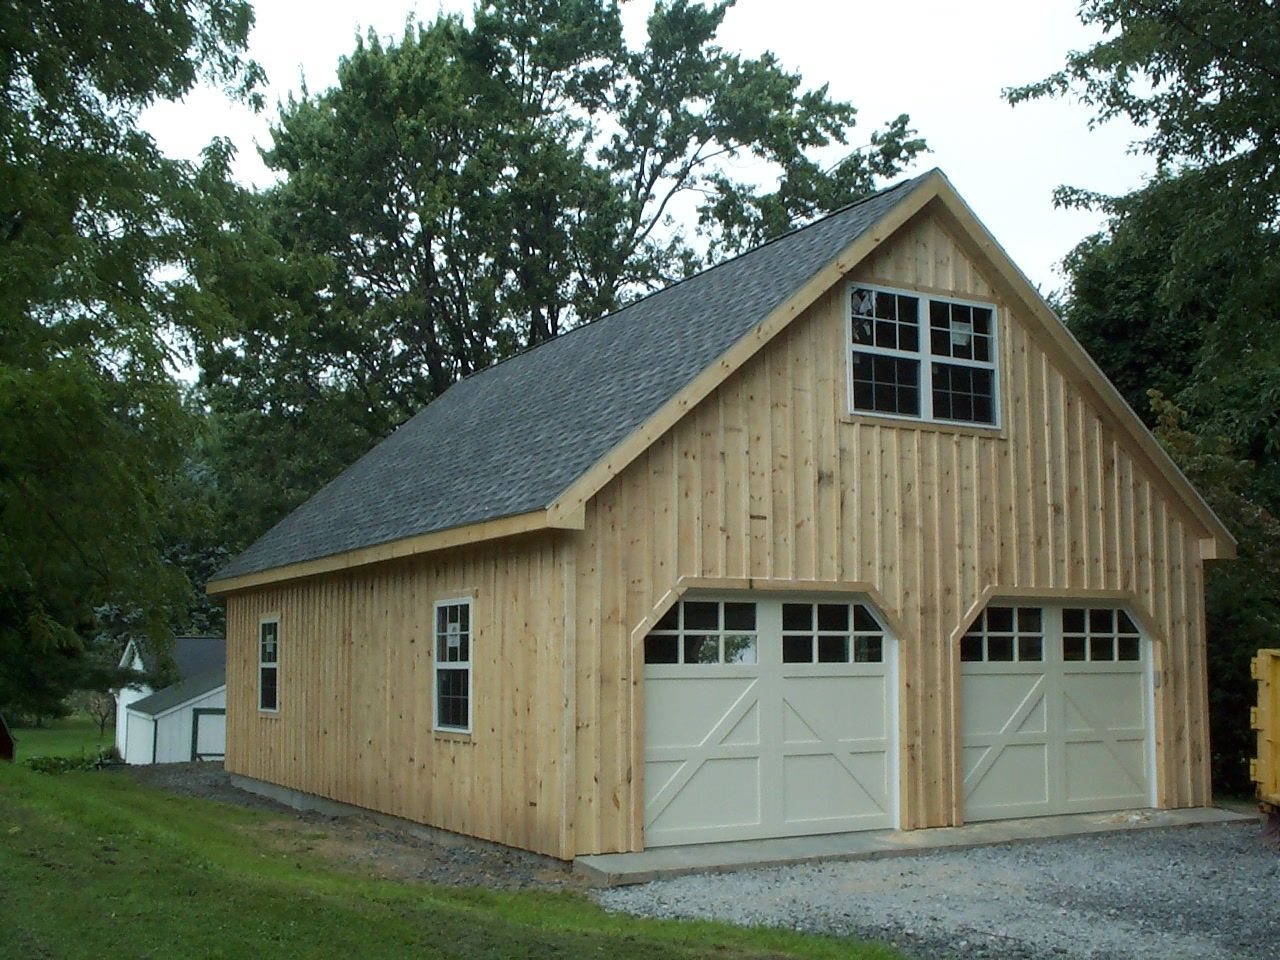 Garage Doors Rochester Ny 3 Car Garage Plans With Loft With Cedar Shake Siding Garage And